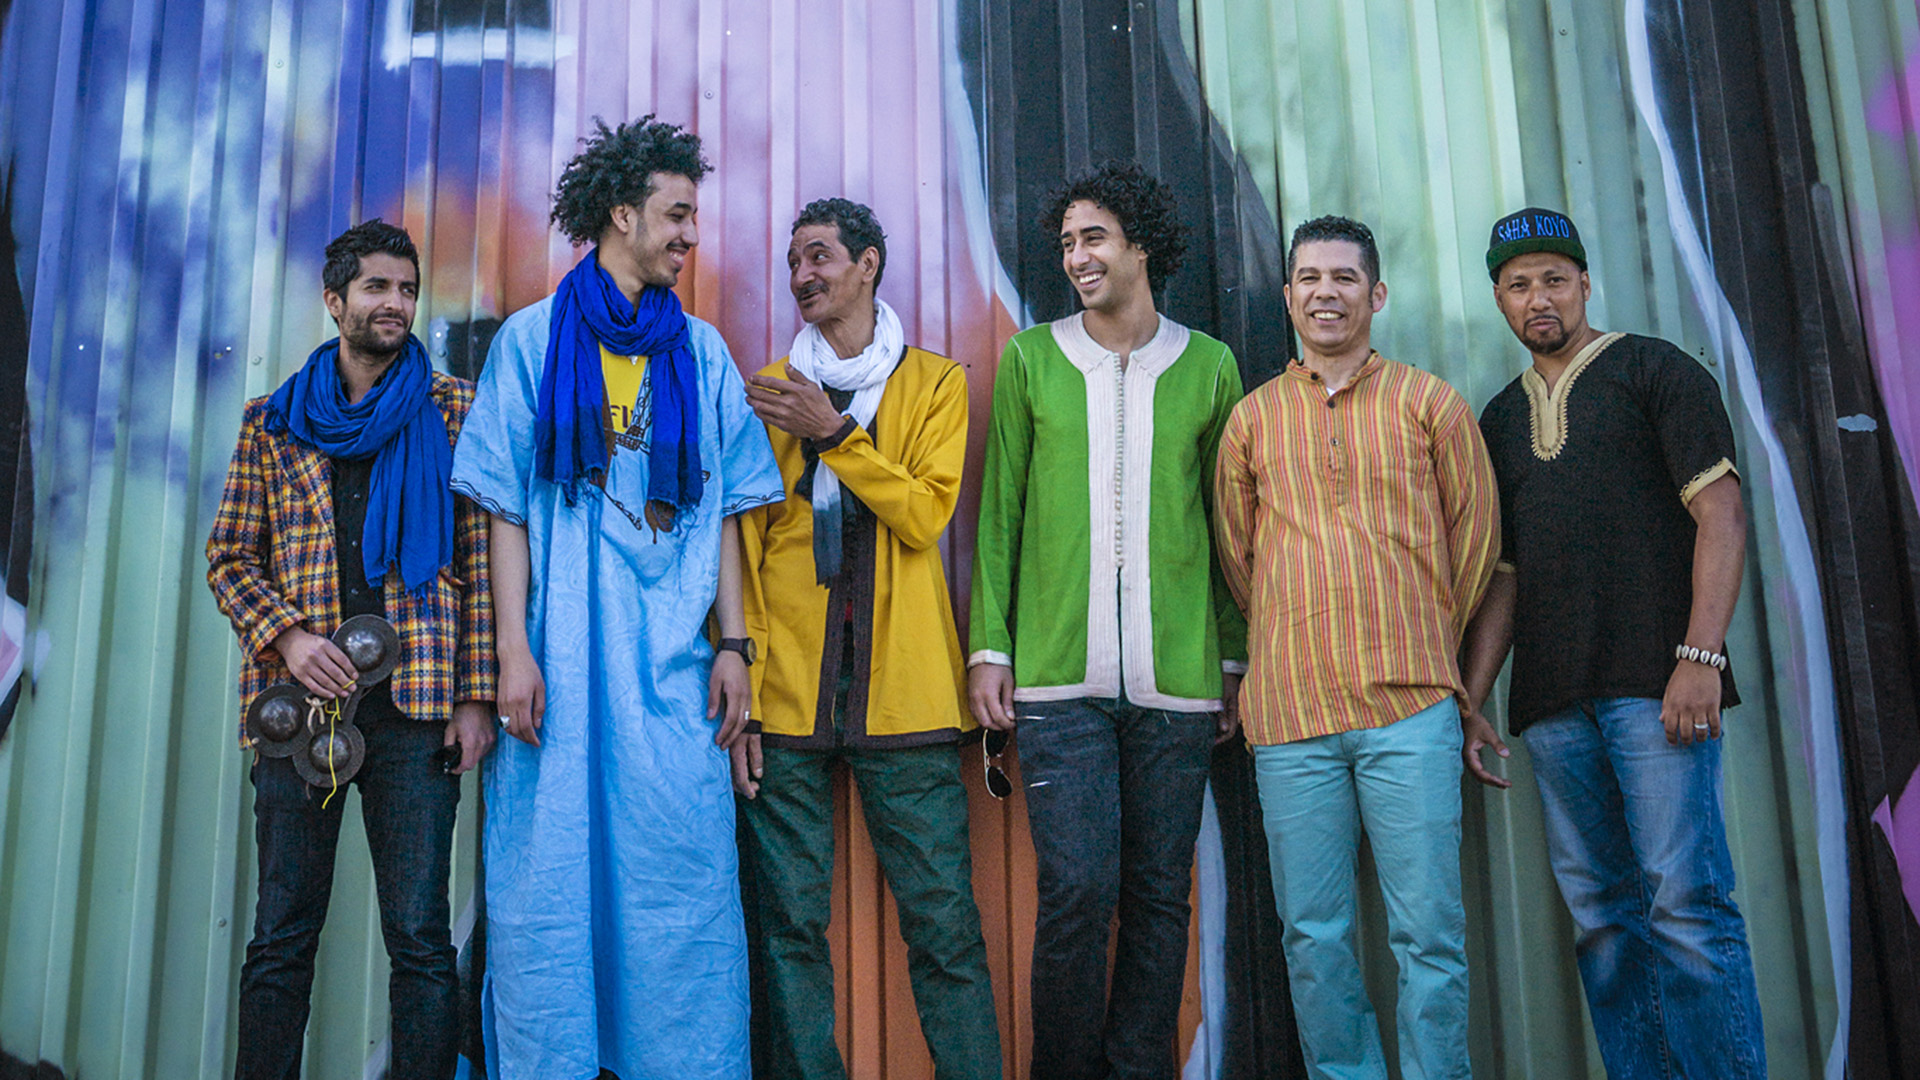 10 Things to Know about Gnawa Music